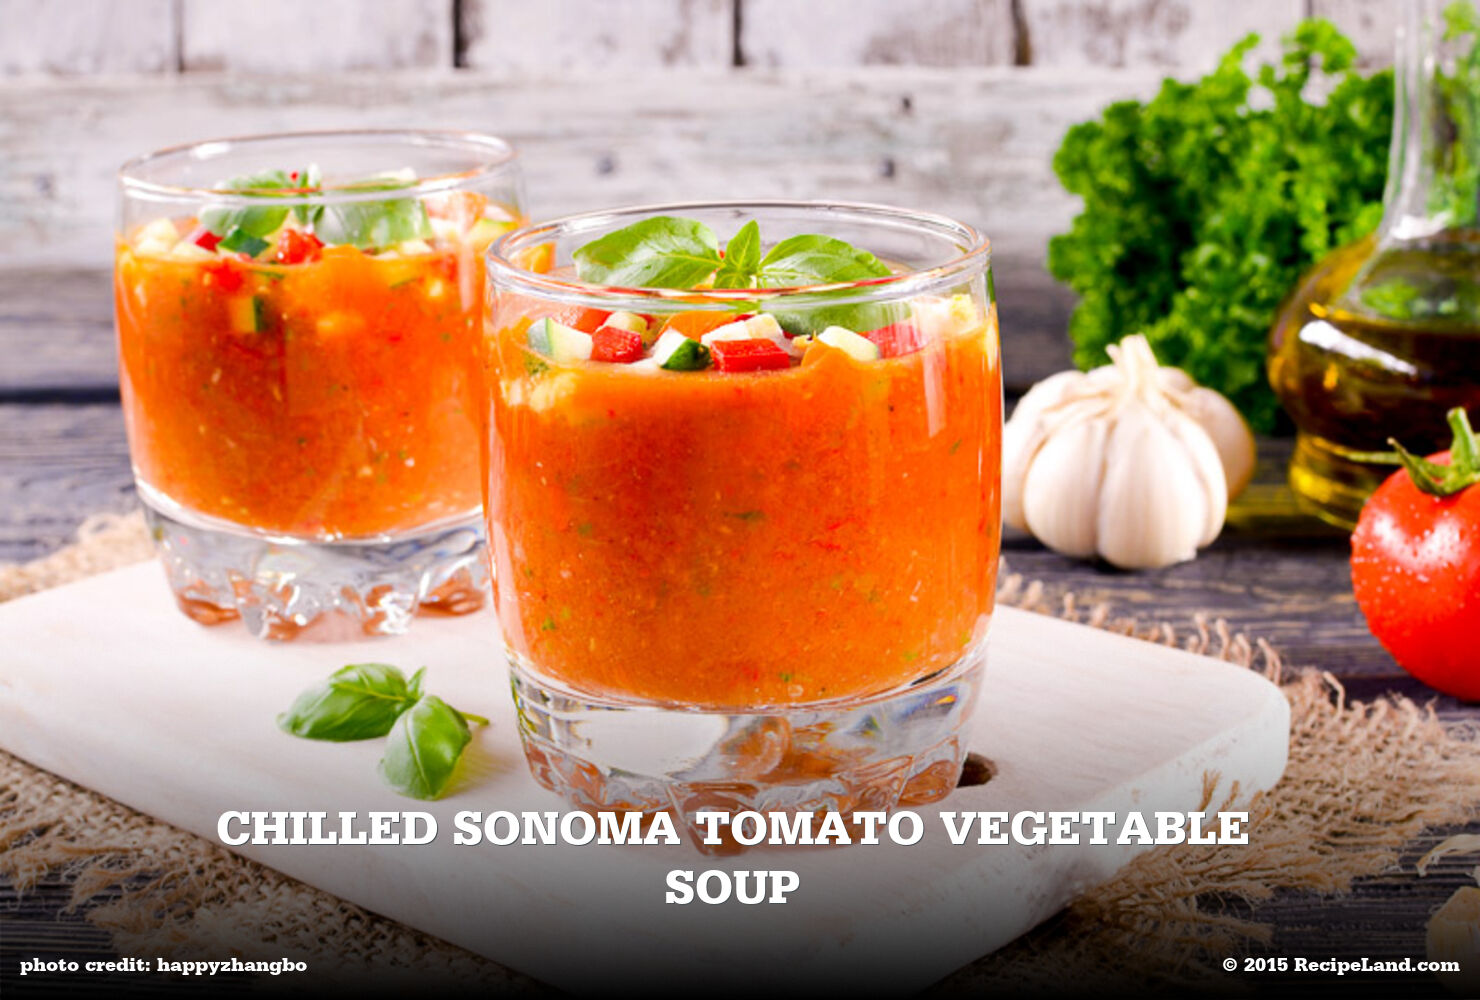 Chilled Sonoma Tomato Vegetable Soup